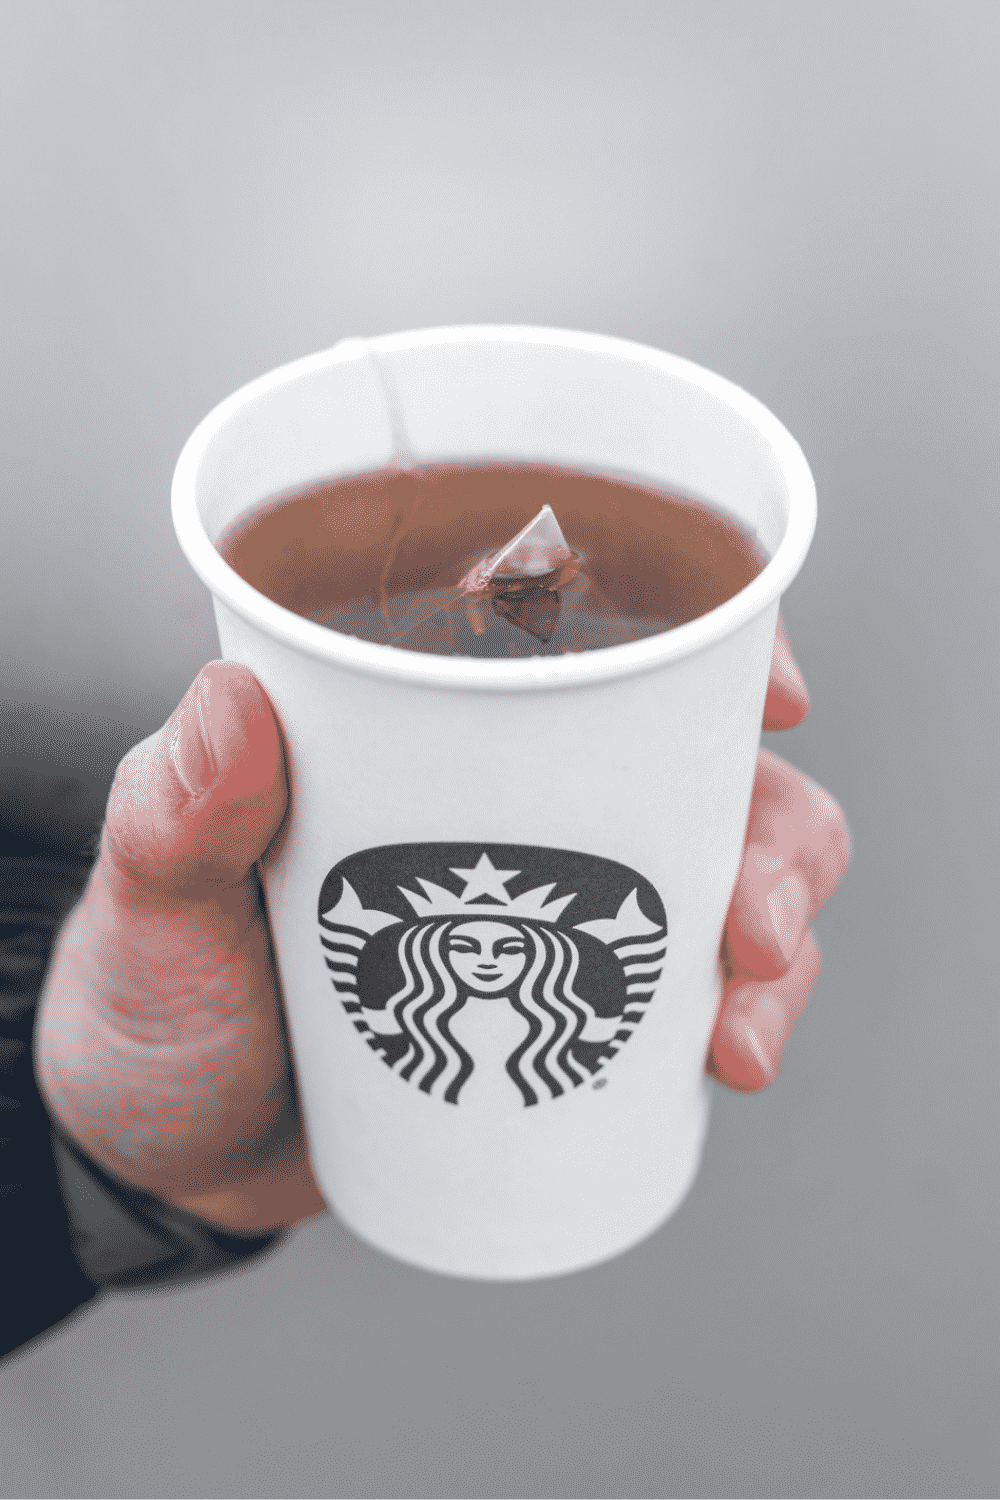 A hand holding a cup of Starbucks in Jade citrus mint tea.